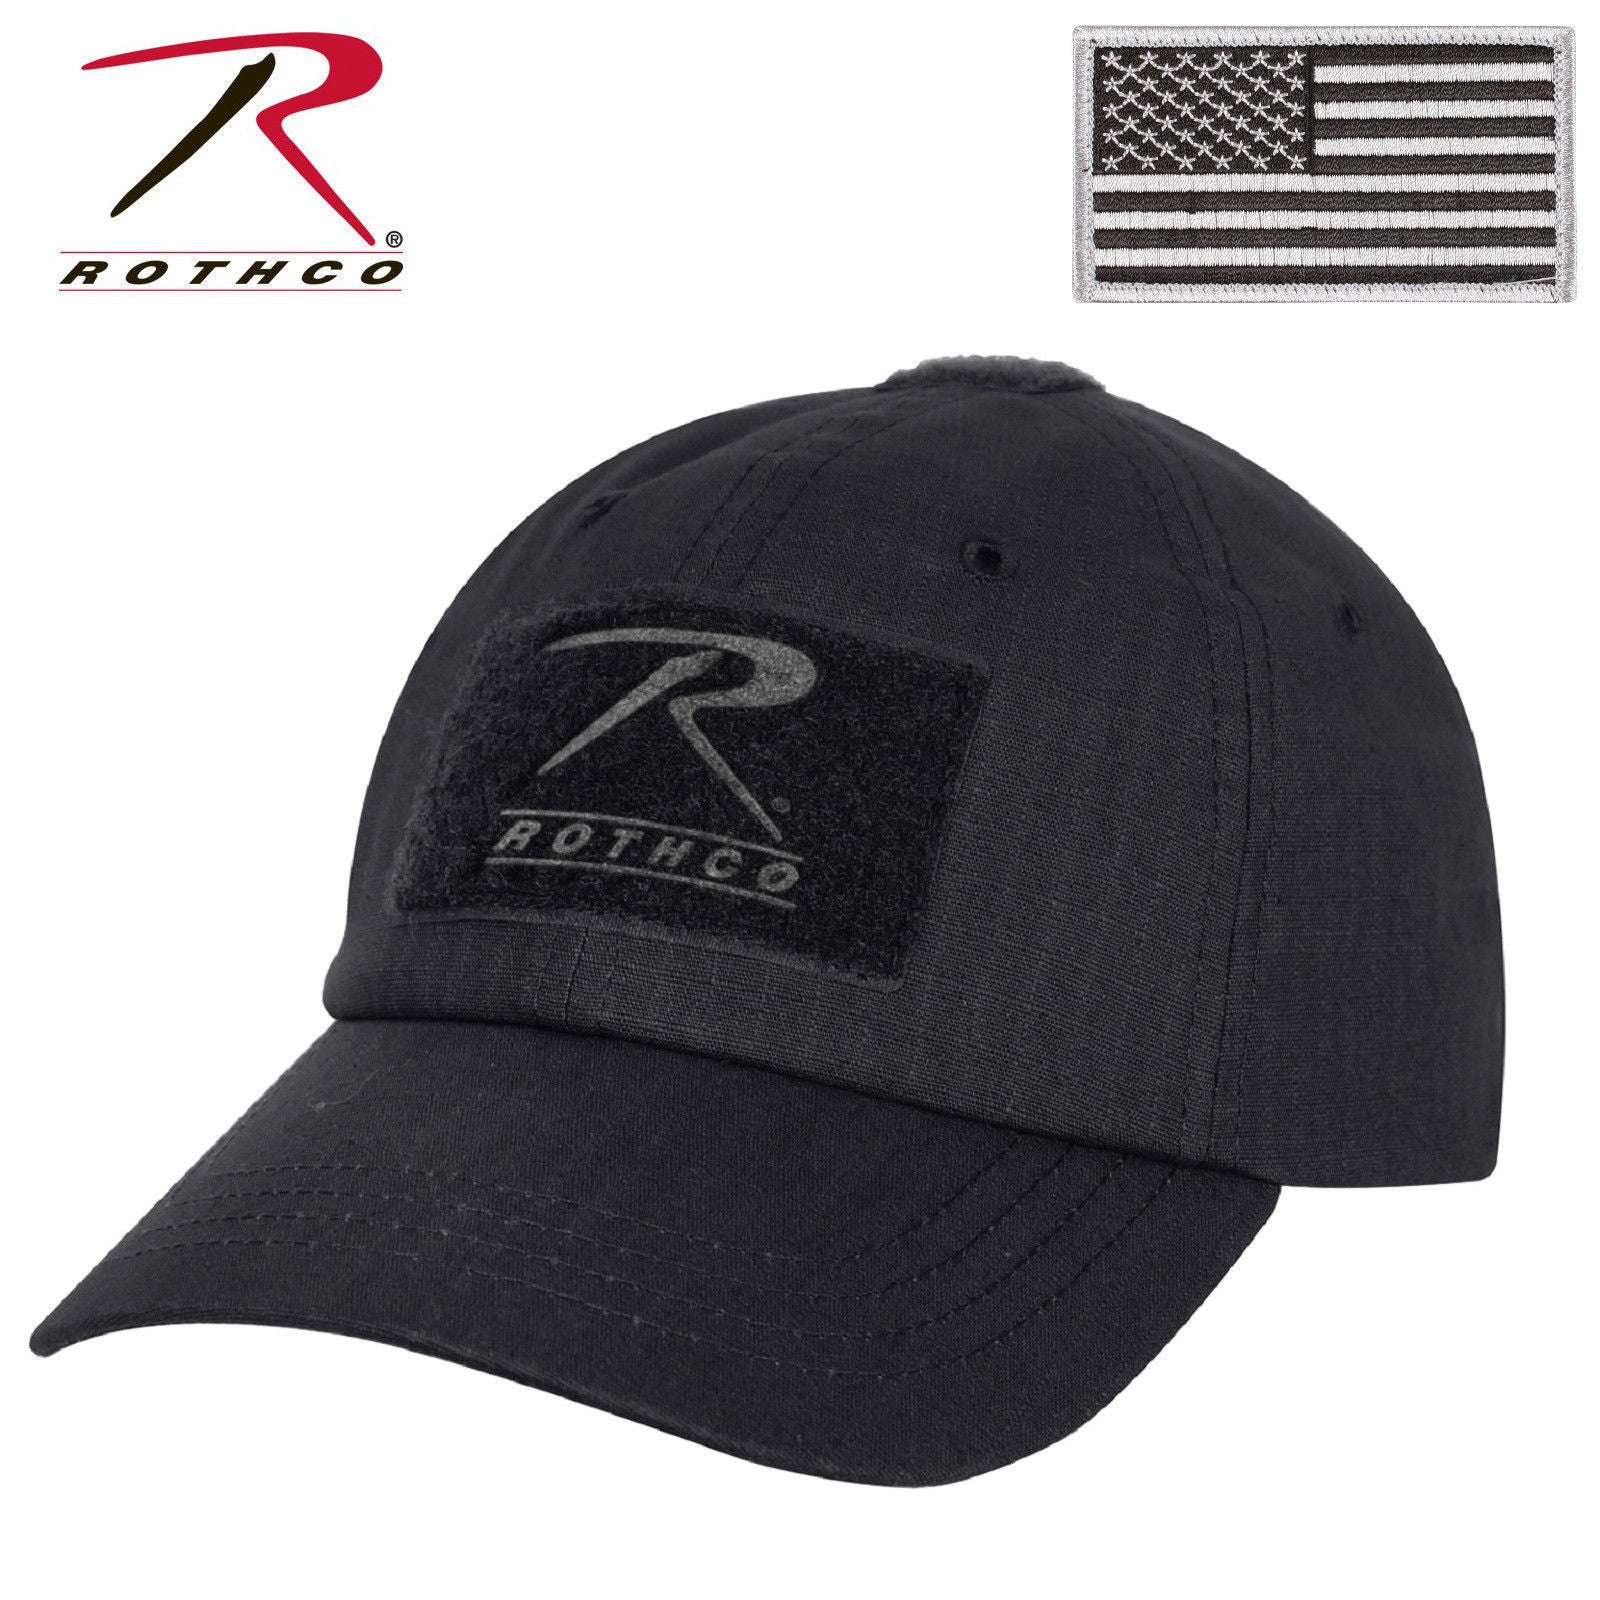 Rip Stop Operator Tactical Cap - Military Style Baseball Hat w  U.S. Patch  Olive Drab Coyote Brown Black eff1358c731b